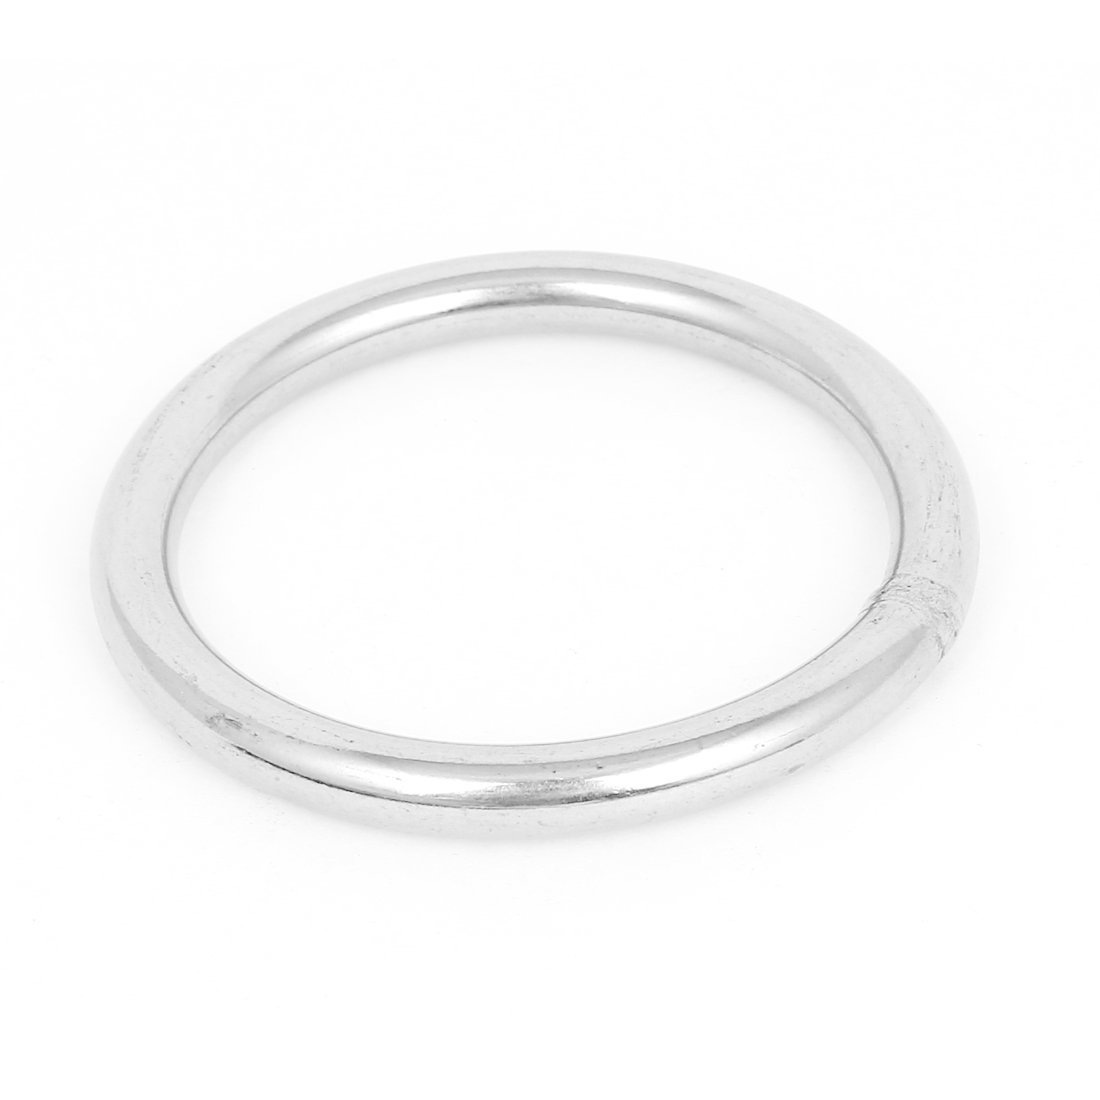 Uxcell a15060500ux0115 Silver Tone 100mmx8mm Stainless Steel Webbing Strapping Welded O Rings